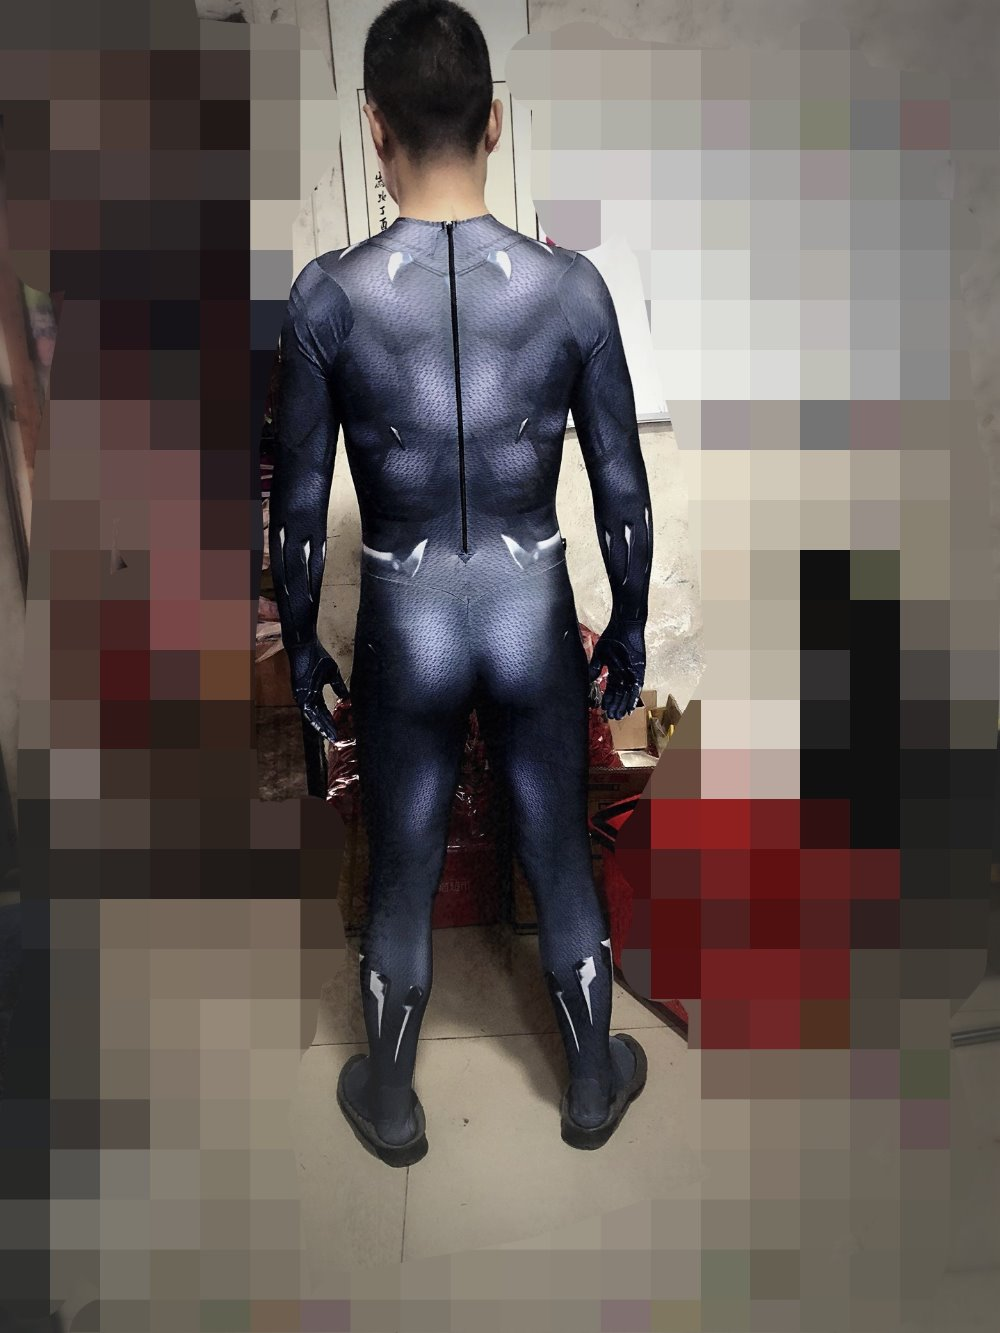 Black Panther Costumes Kids Men Halloween Costume Captain America Civil War Movie Marvel Black Panther cosplay SuperHero Suit | .wishlists.tk : black panther marvel halloween costume  - Germanpascual.Com